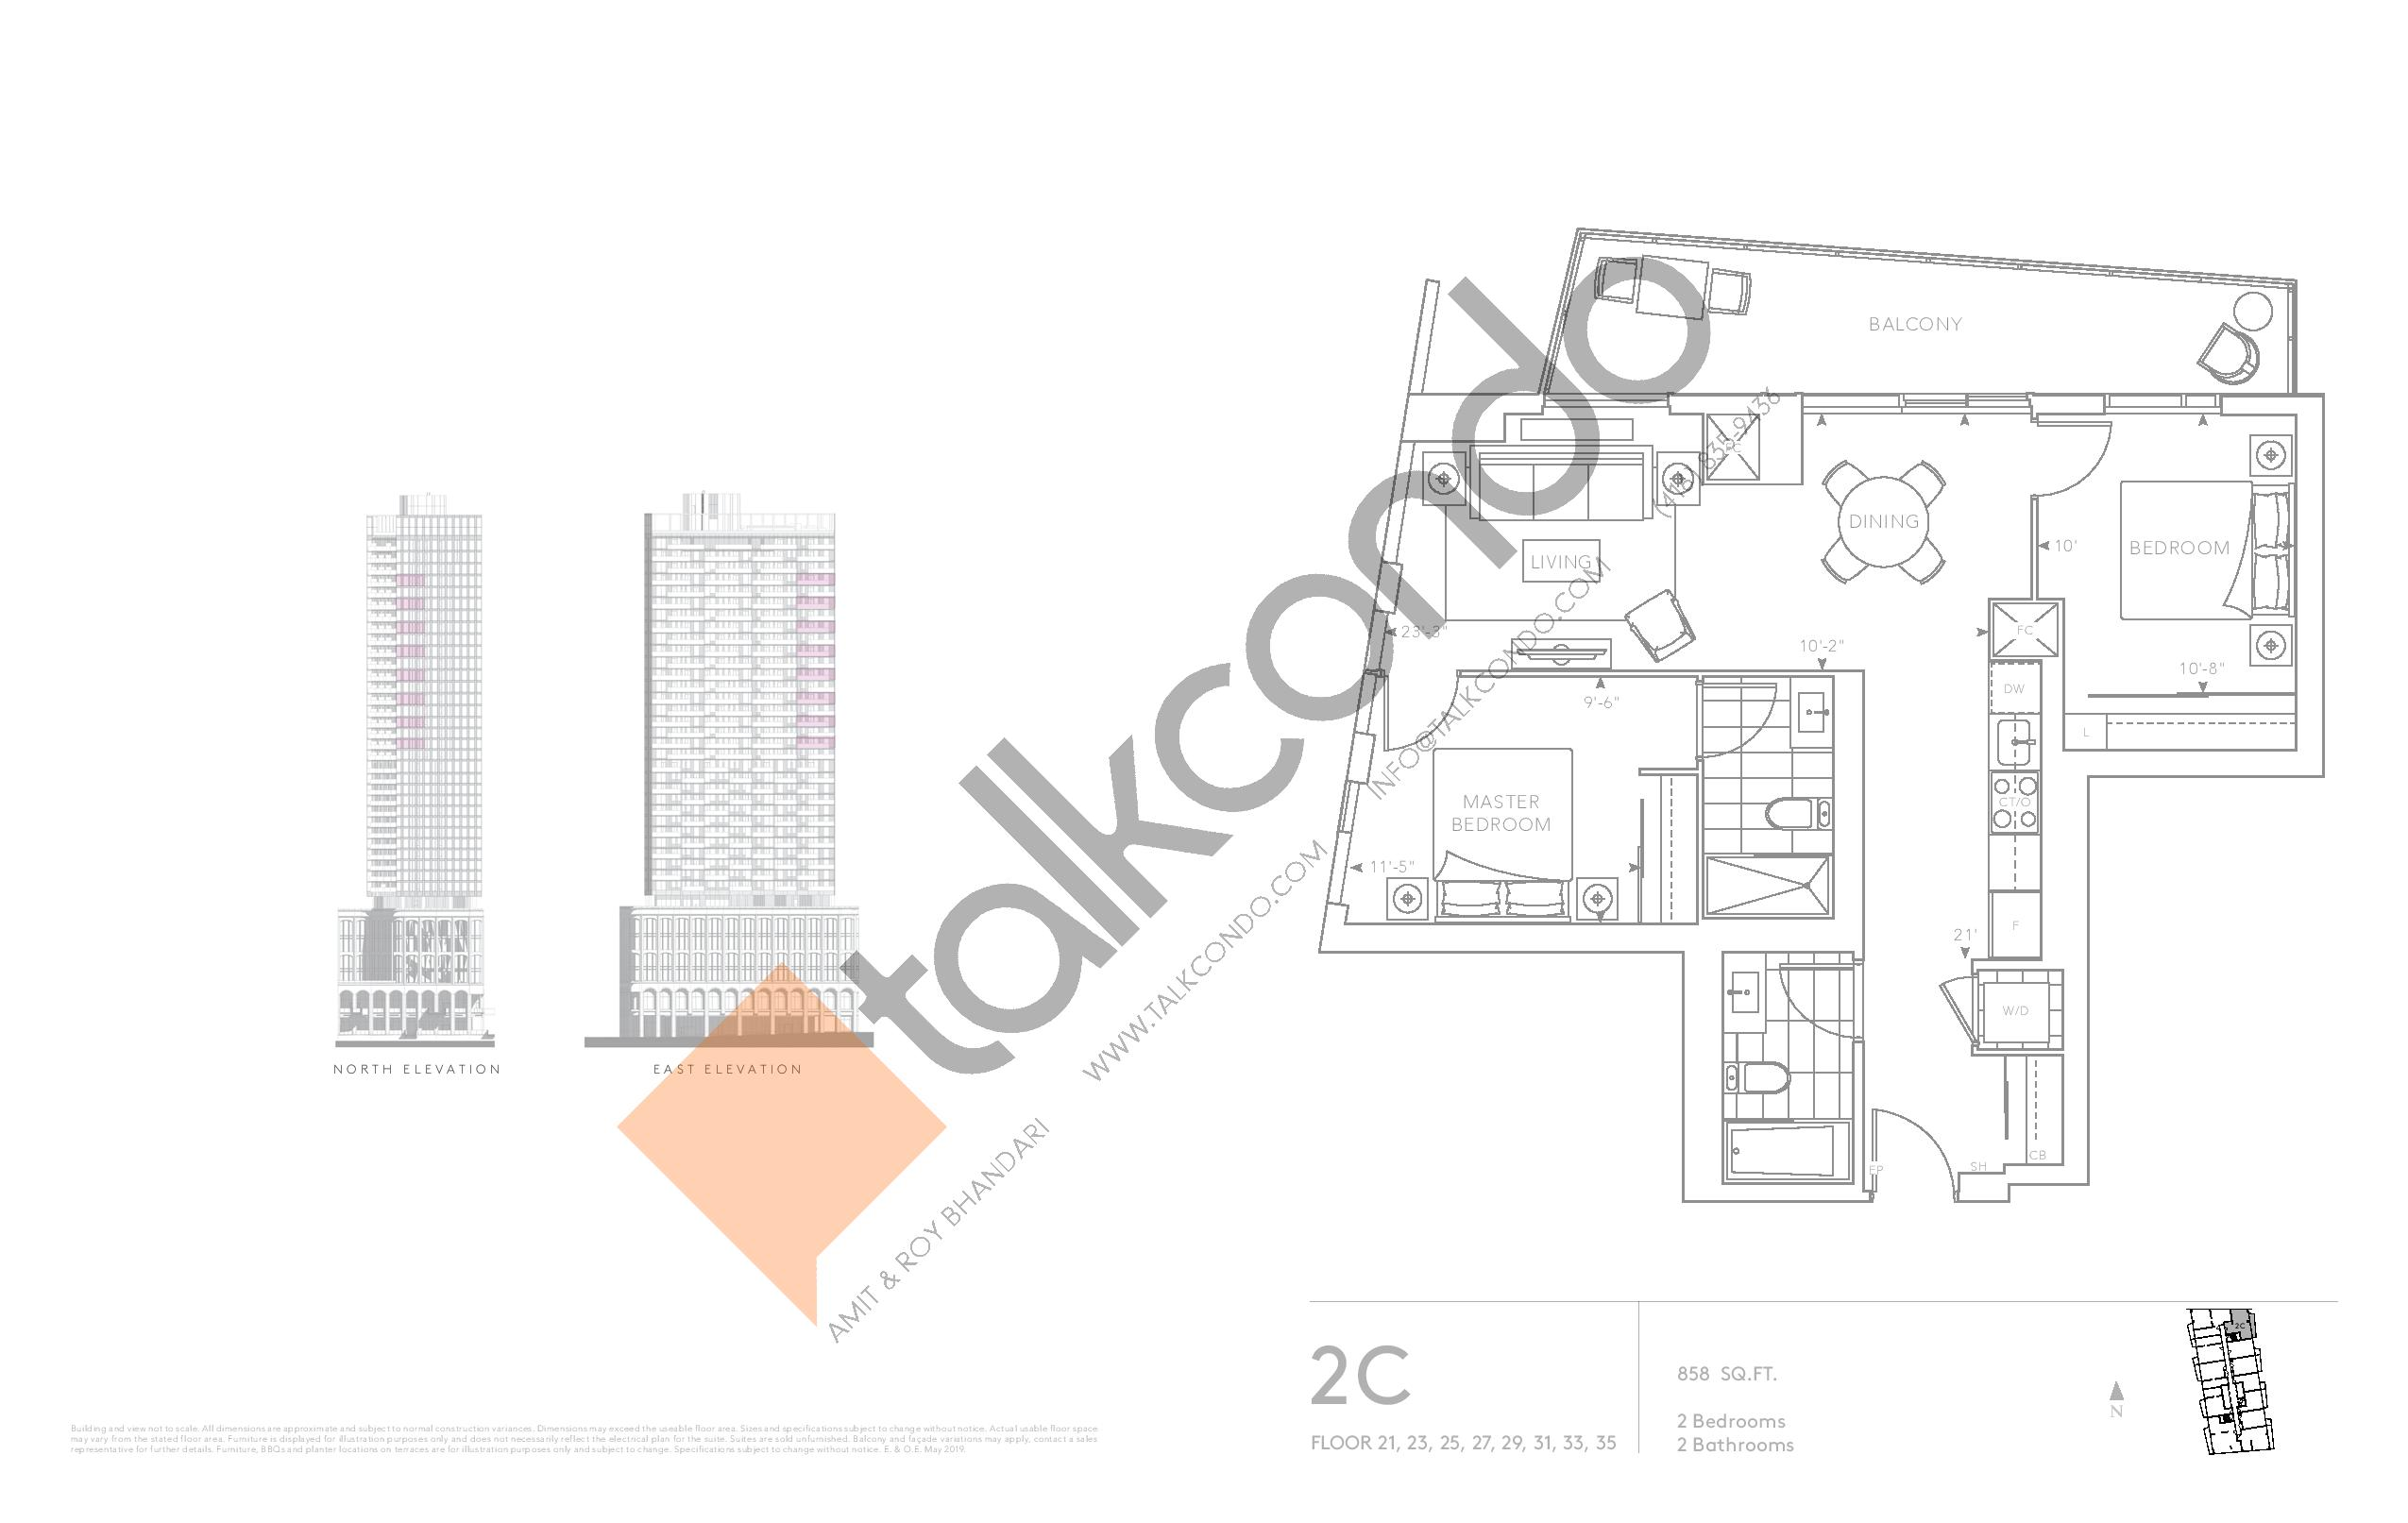 2C - Classic Series Floor Plan at Tridel at The Well Condos - 858 sq.ft